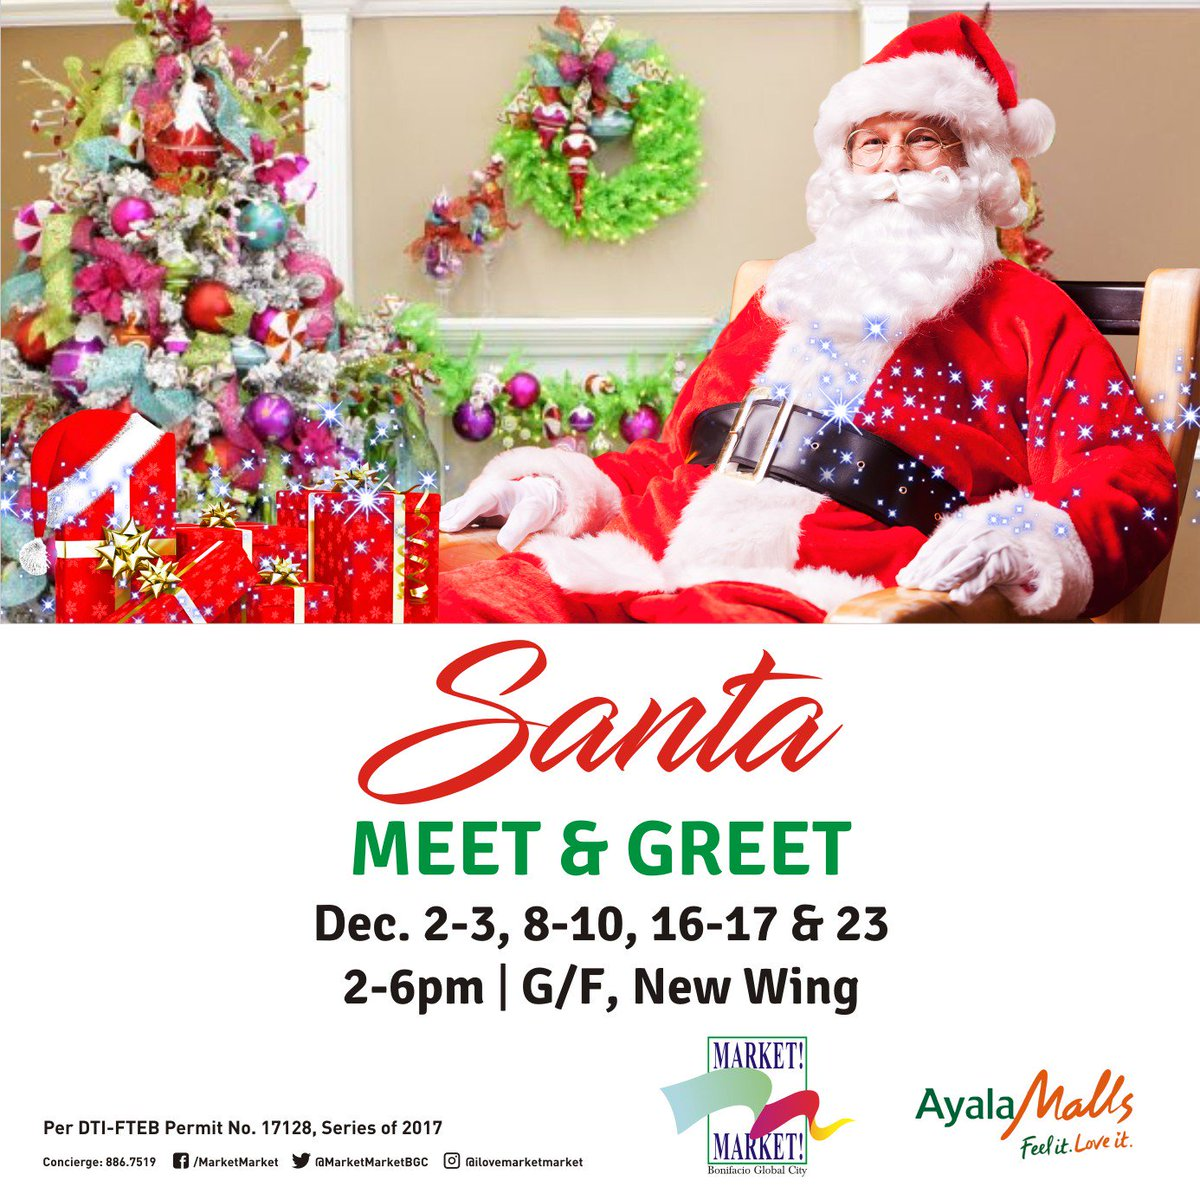 Market Market On Twitter Bond With The Family With Santa Meet